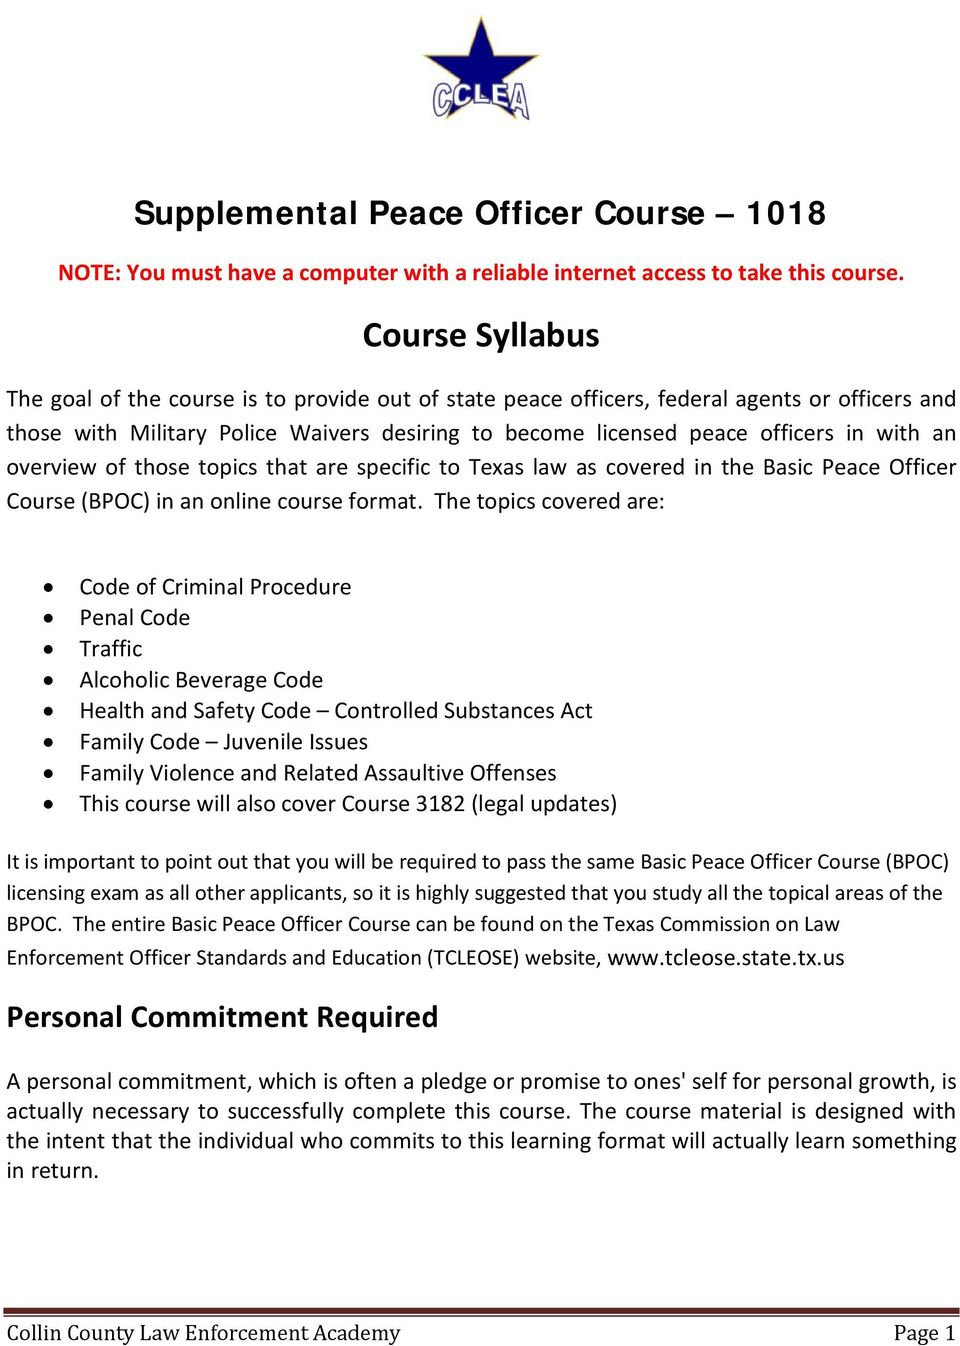 Supplemental Peace Officer Course NOTE: You must have a